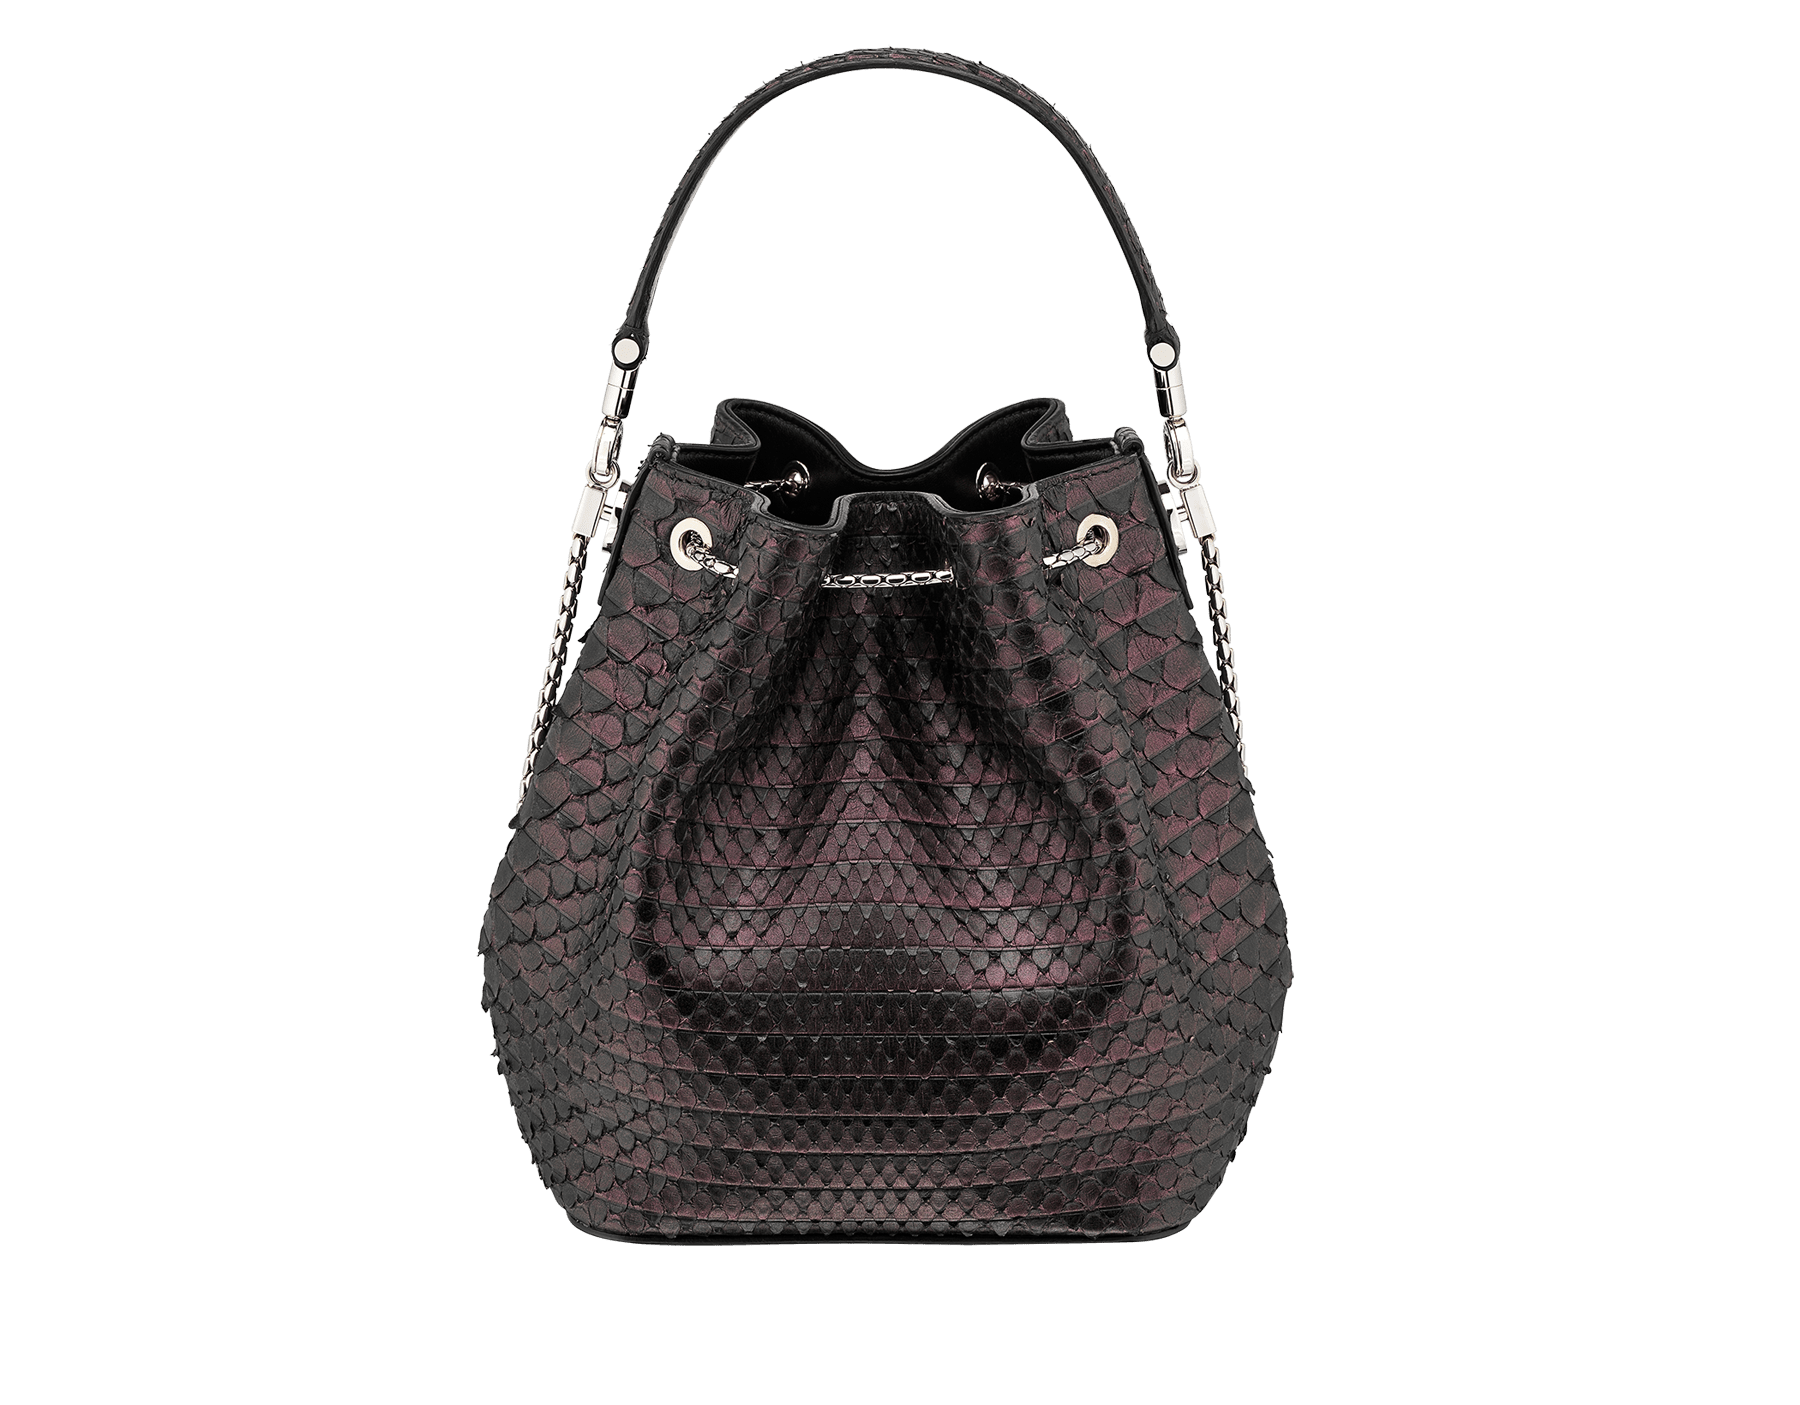 Bucket Serpenti Forever in plum amethyst Plissé python skin and black nappa internal lining. Hardware in light gold plated brass and snakehead closure in black and plum amethyst enamel, with eyes in black onyx. 934-PP image 3